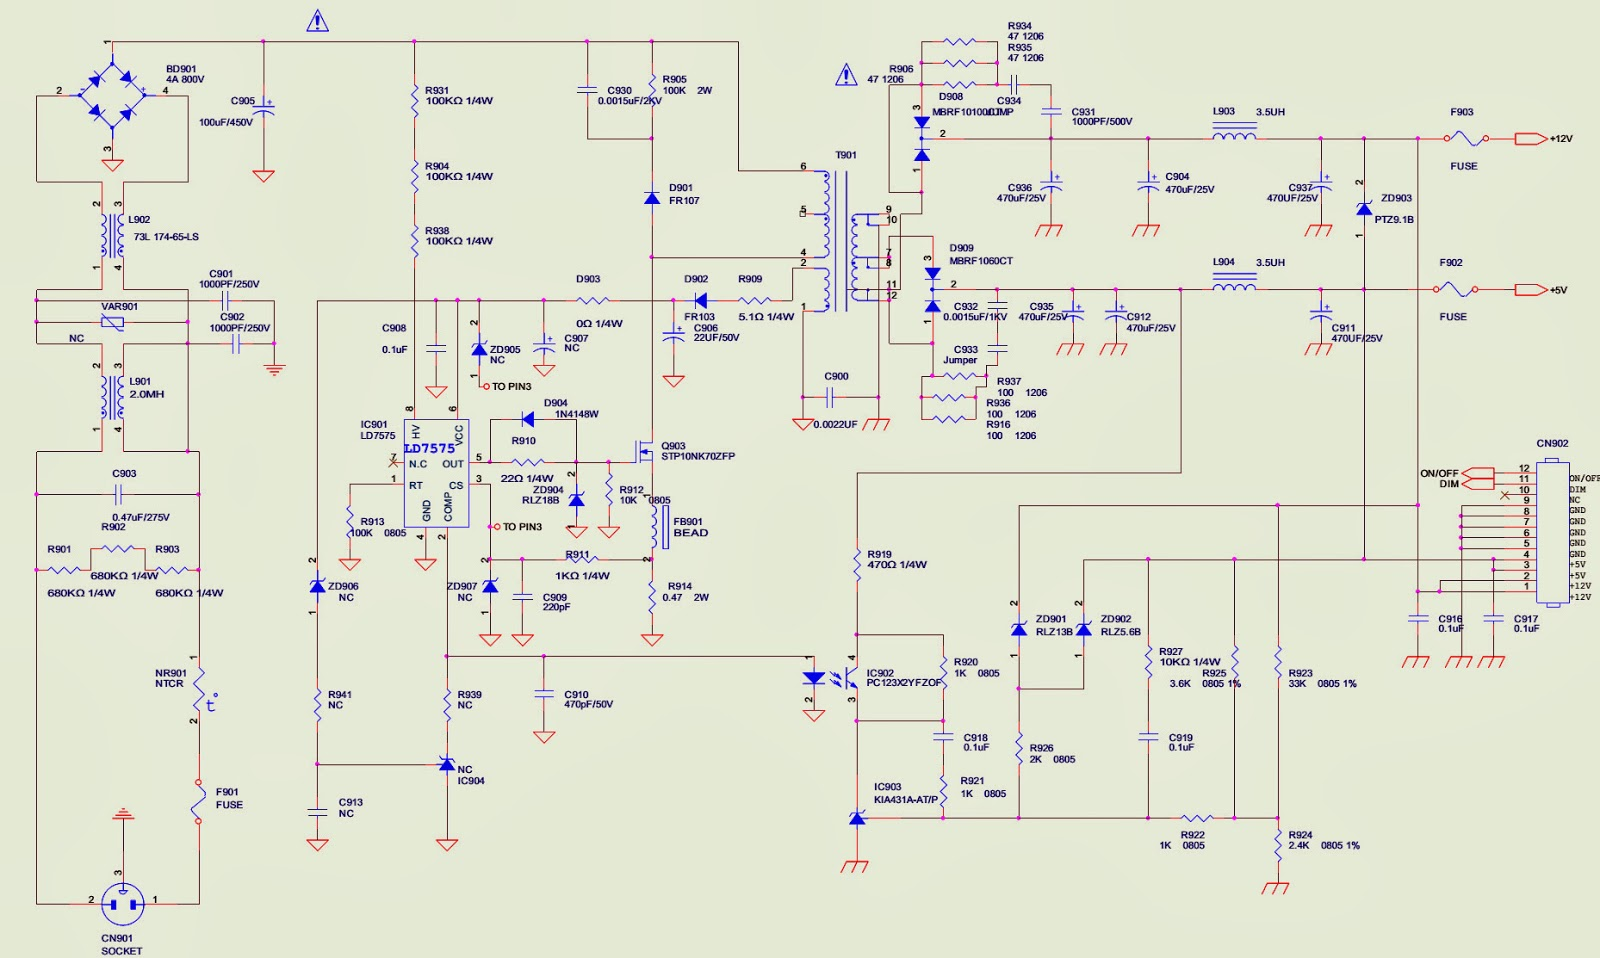 small resolution of hcl hcm9lwat11 19 inch lcd monitor power supply schematic aoc lcd monitor schematic diagram lcd monitor schematic diagram